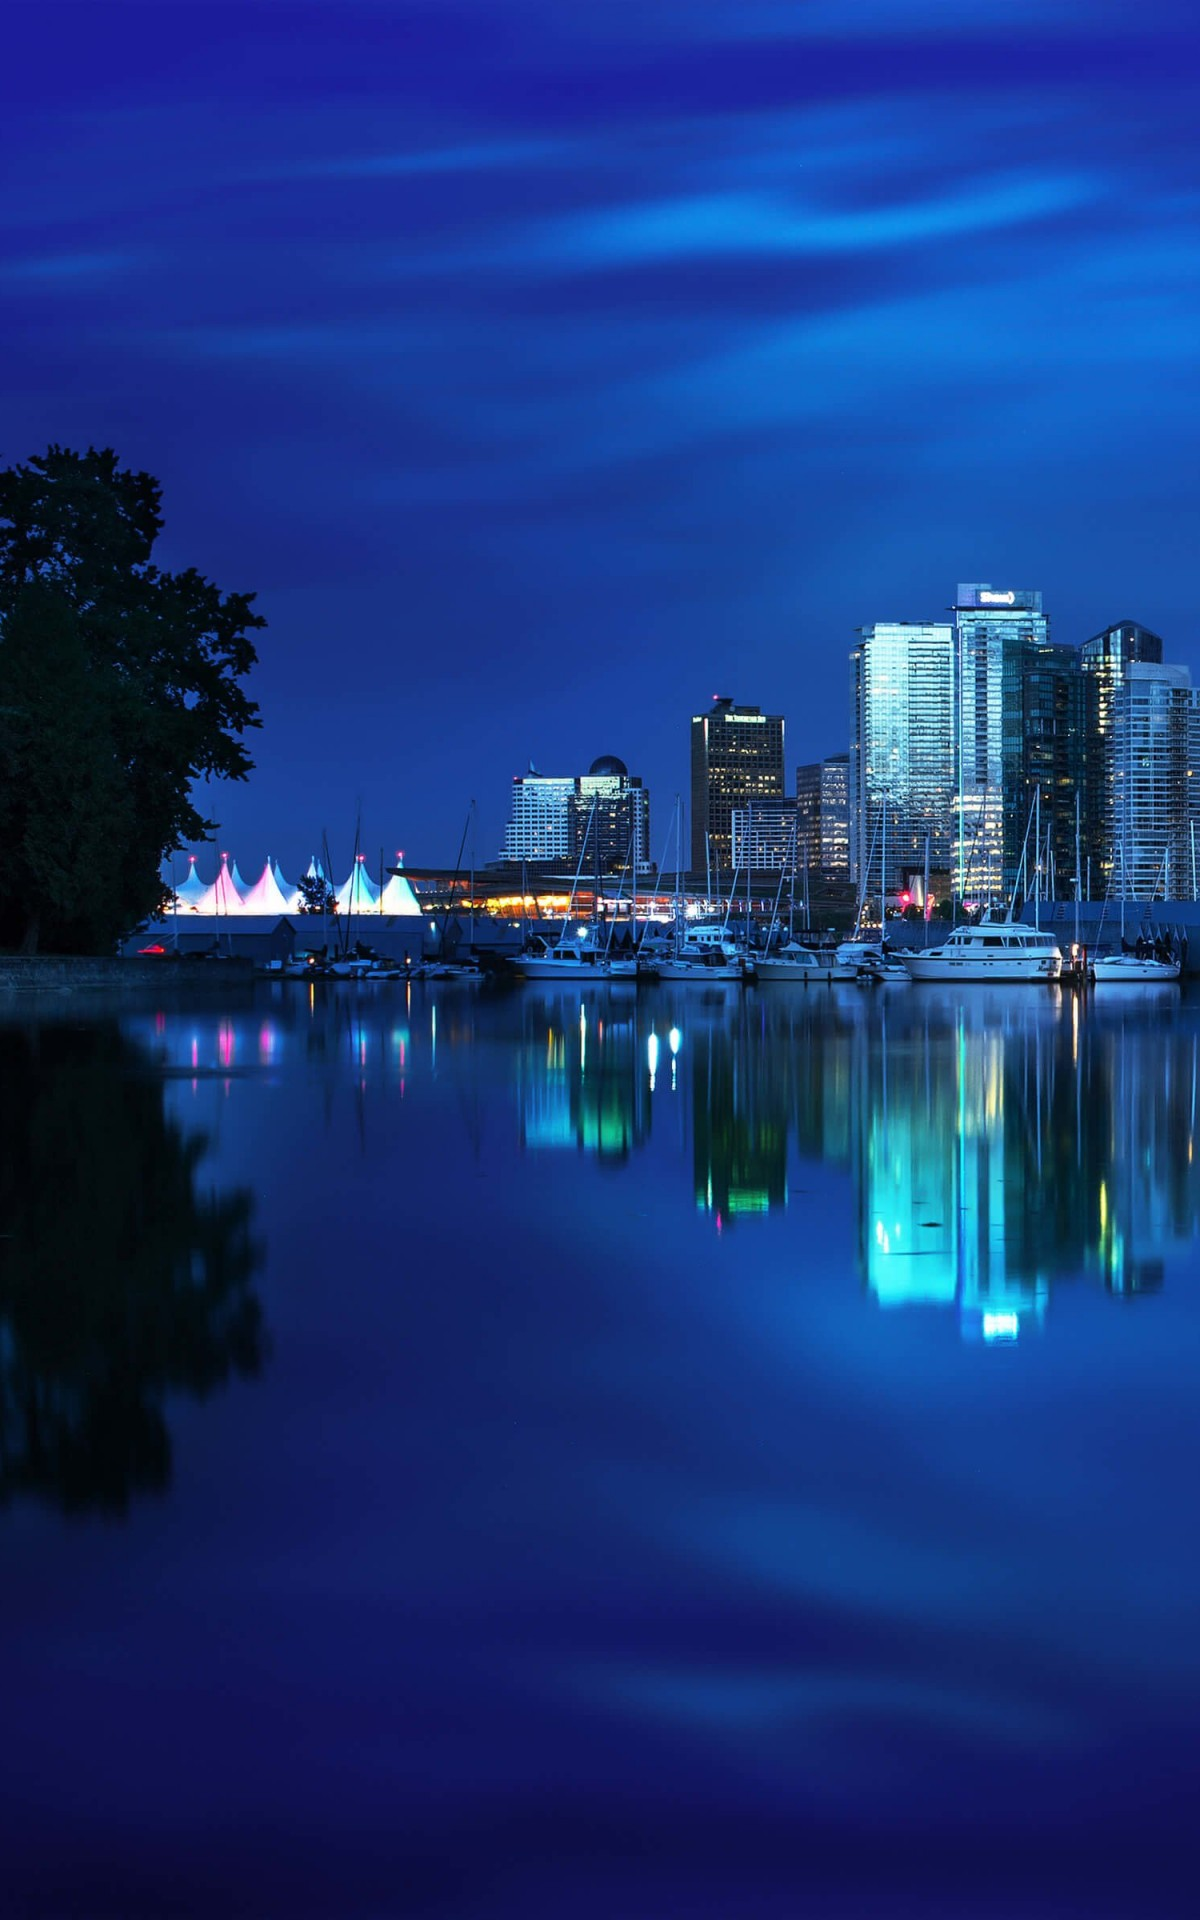 Coal Harbour Marina, Vancouver Wallpaper for Amazon Kindle Fire HDX